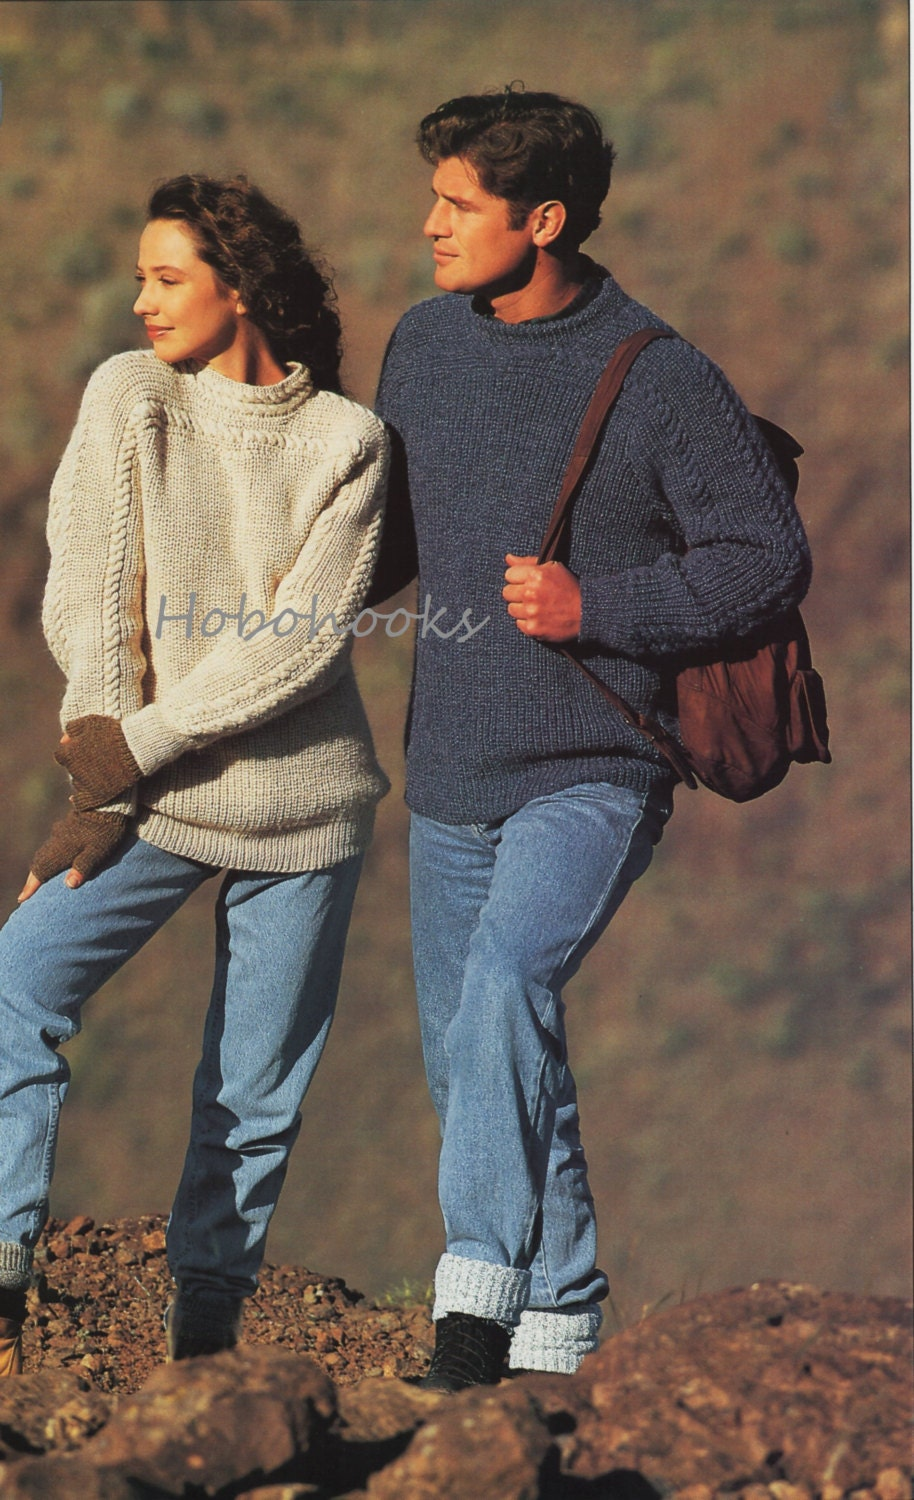 Womens knitting Pattern Mens Knitting Pattern crew neck sweater patterned ladies 2844 inch DK Unisex Knitting Pattern PDF instant download